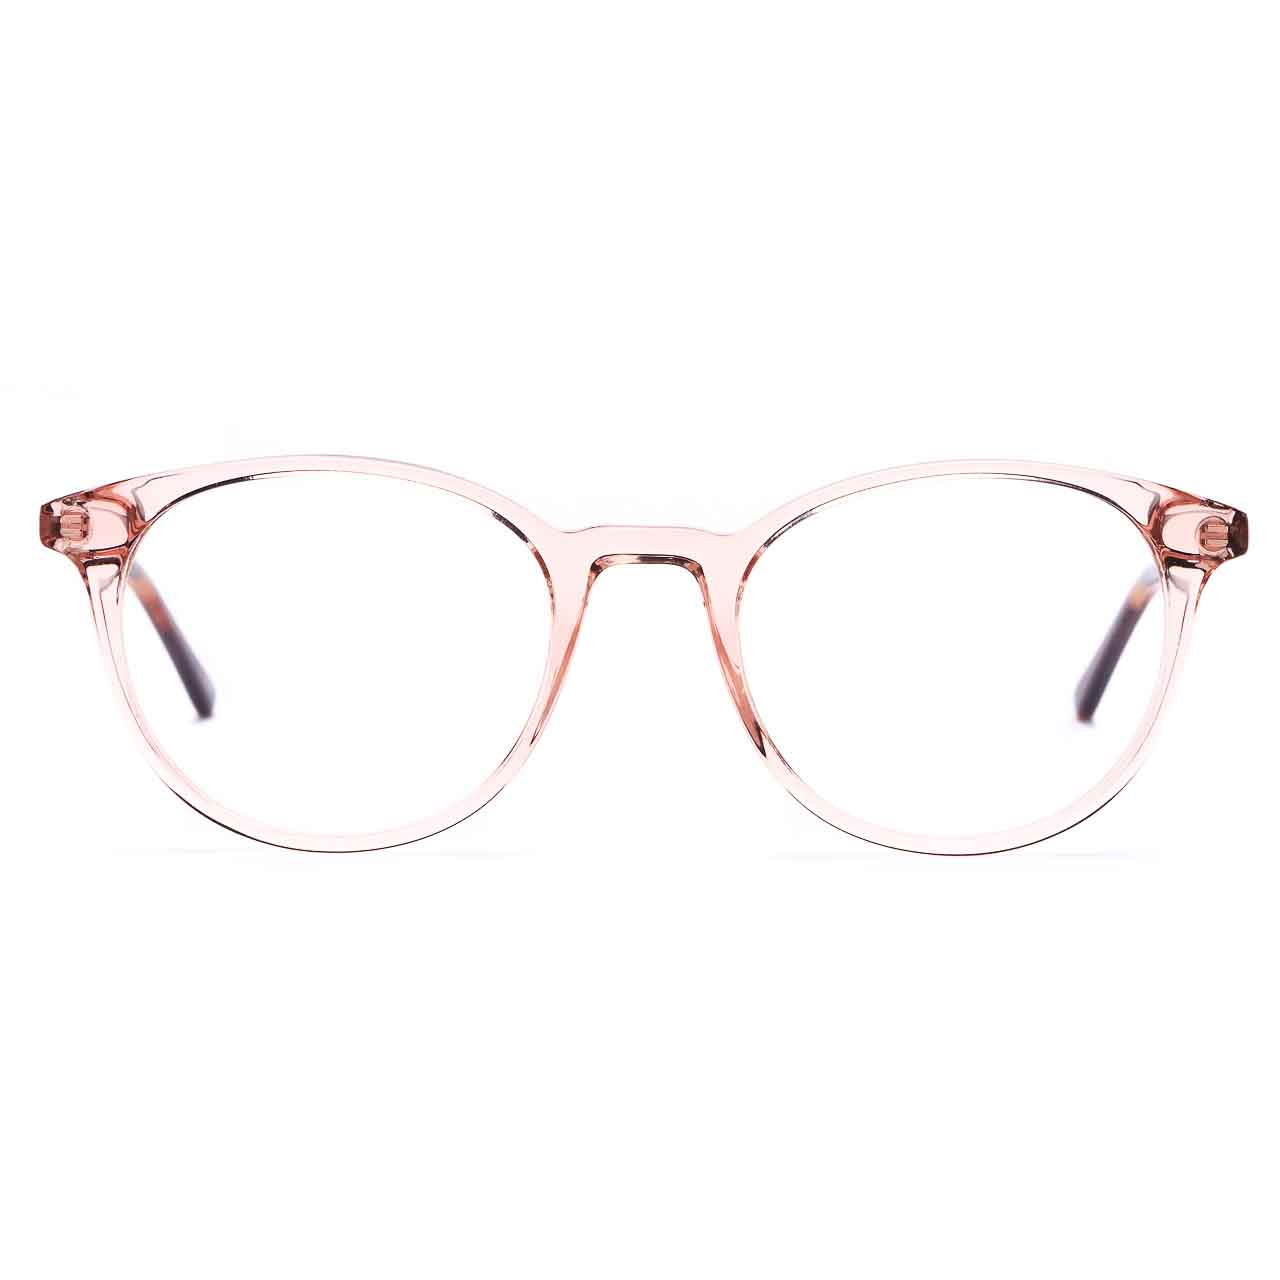 CHARLES STONE Crystal Pink & Tortoise Round